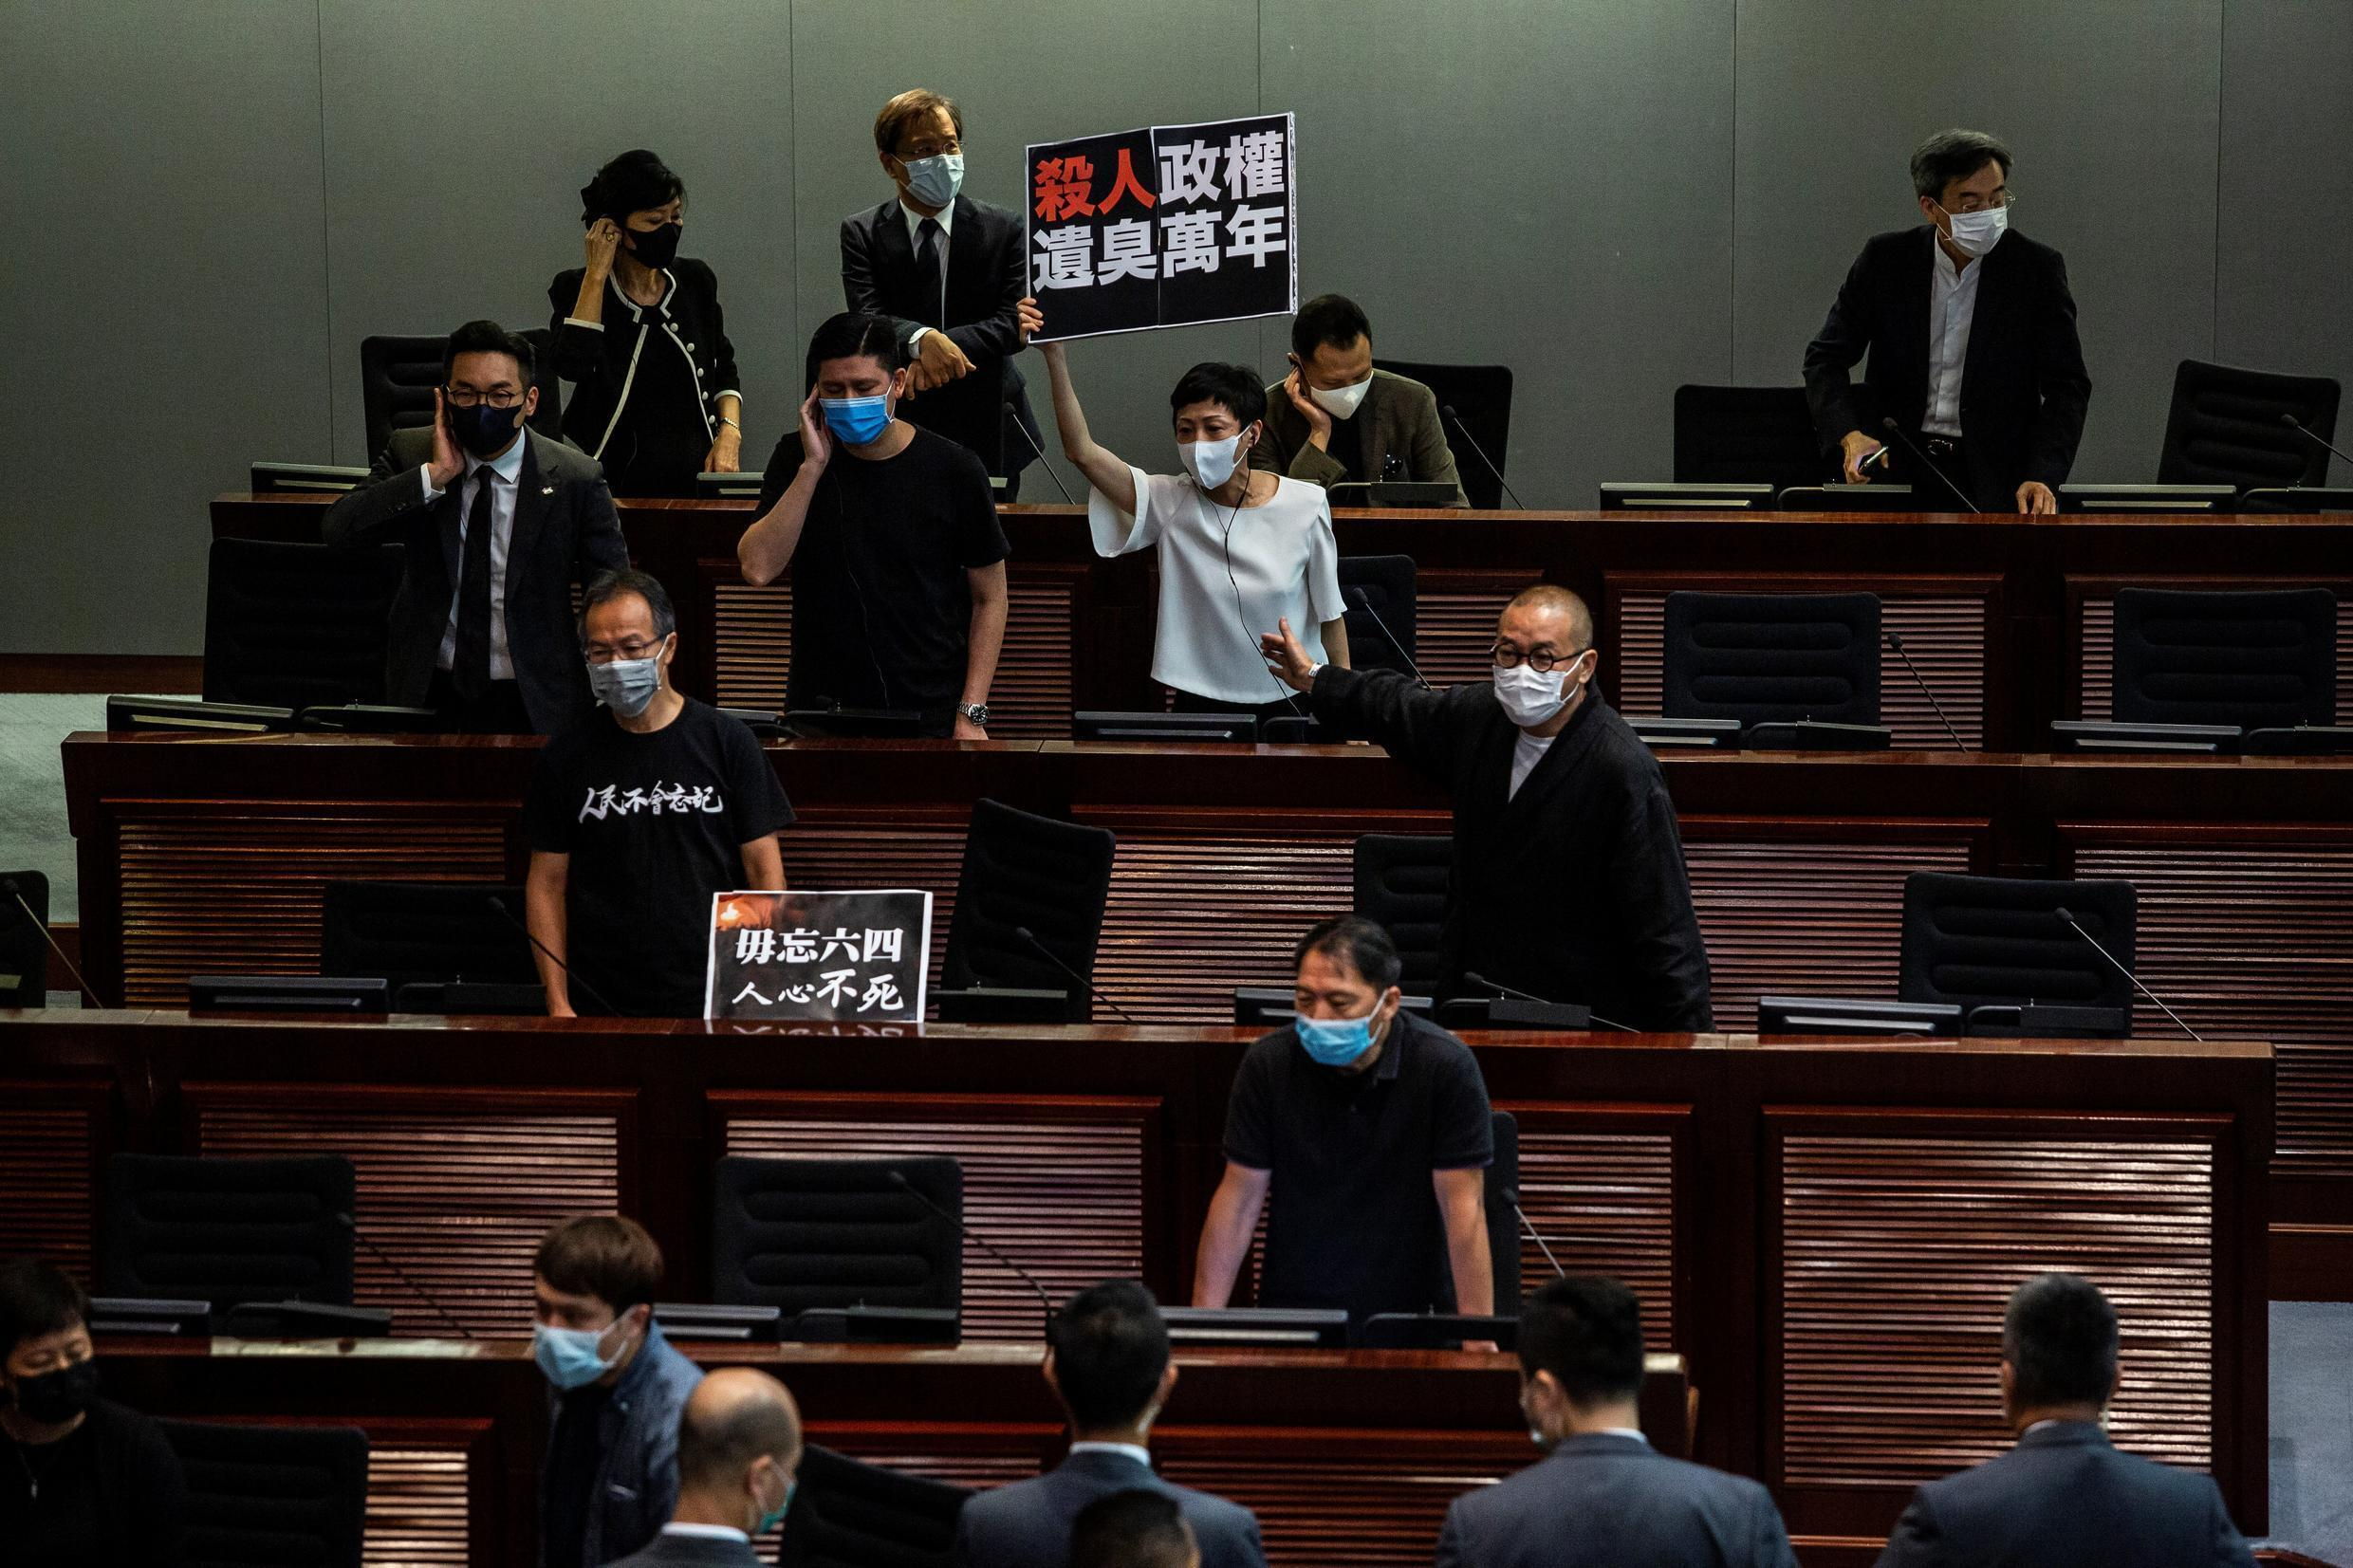 Pro-democracy MPs protest during the debate on the law prohibiting insults to the Chinese national anthem on June 4, 2020 at the Hong Kong Legislative Council